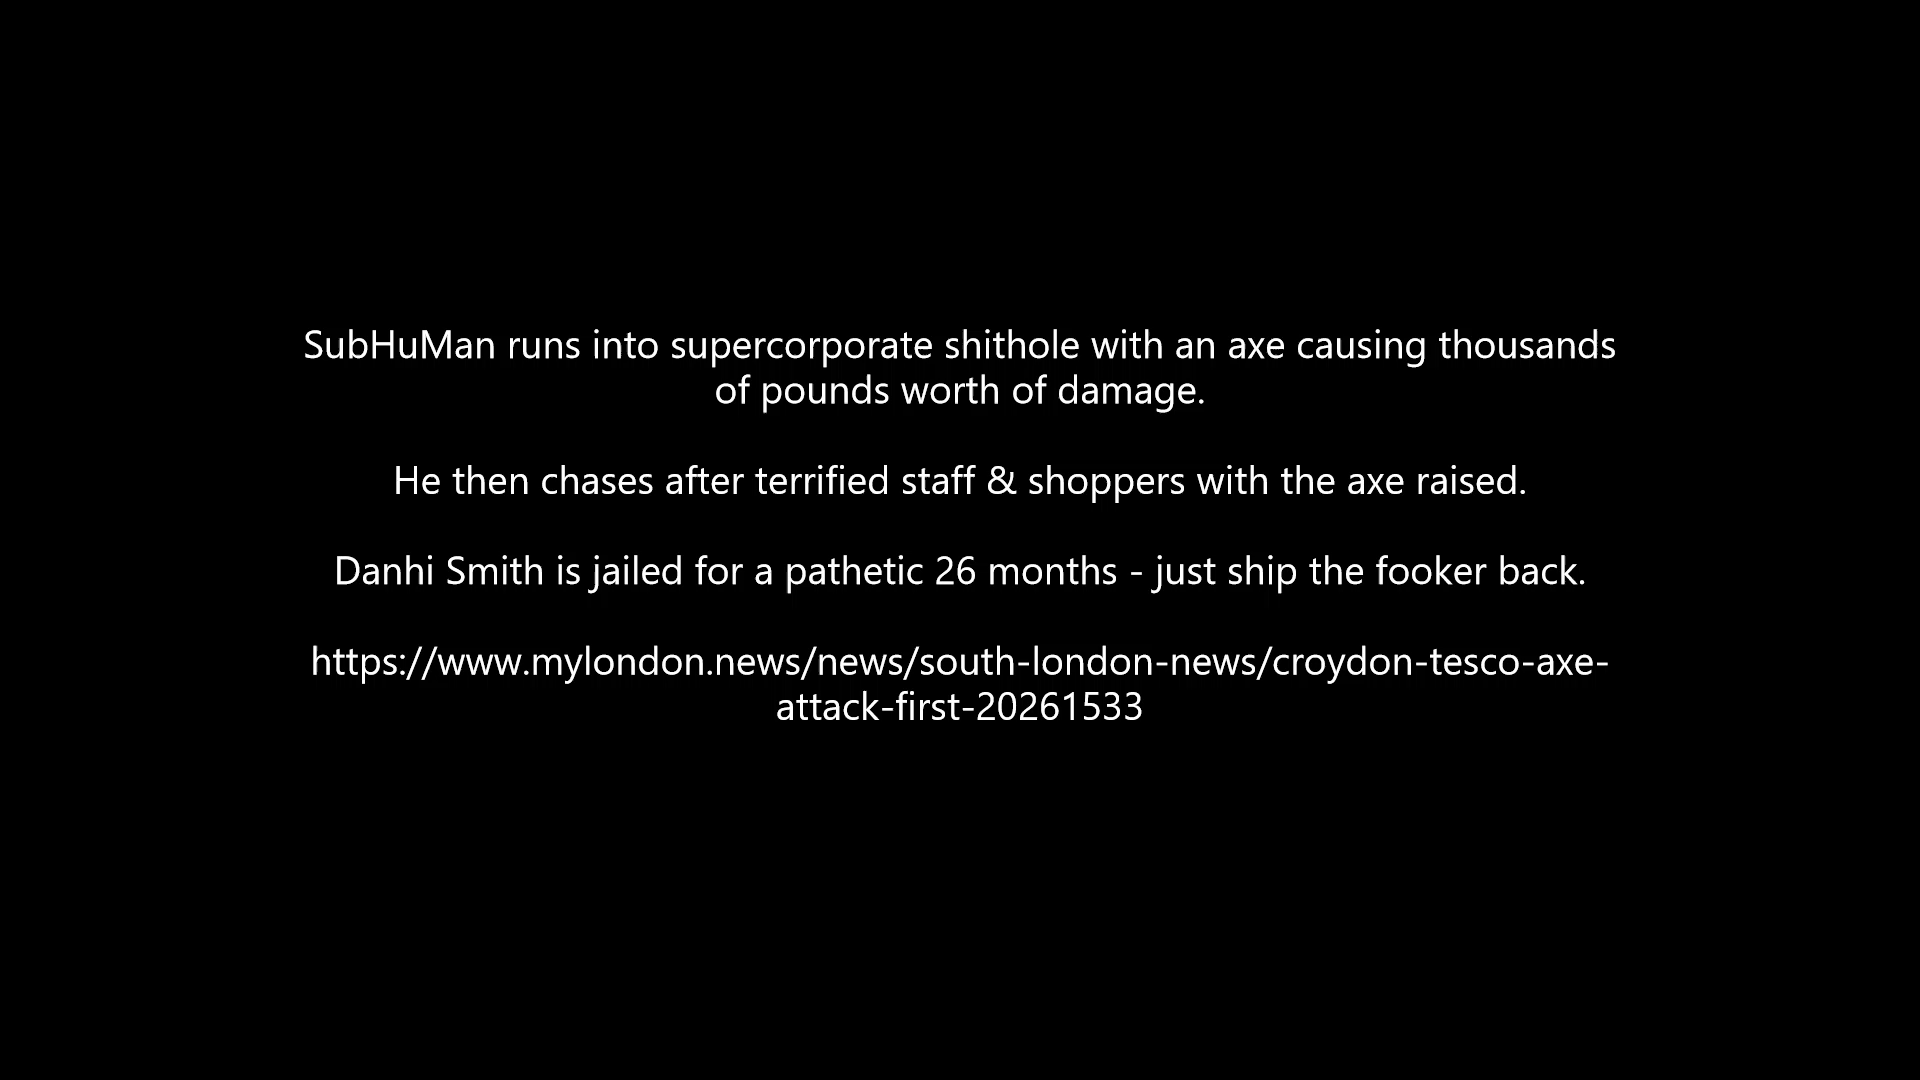 SubHuMan runs into supermarket with an axe smashing up some corporate shite before turning on staff